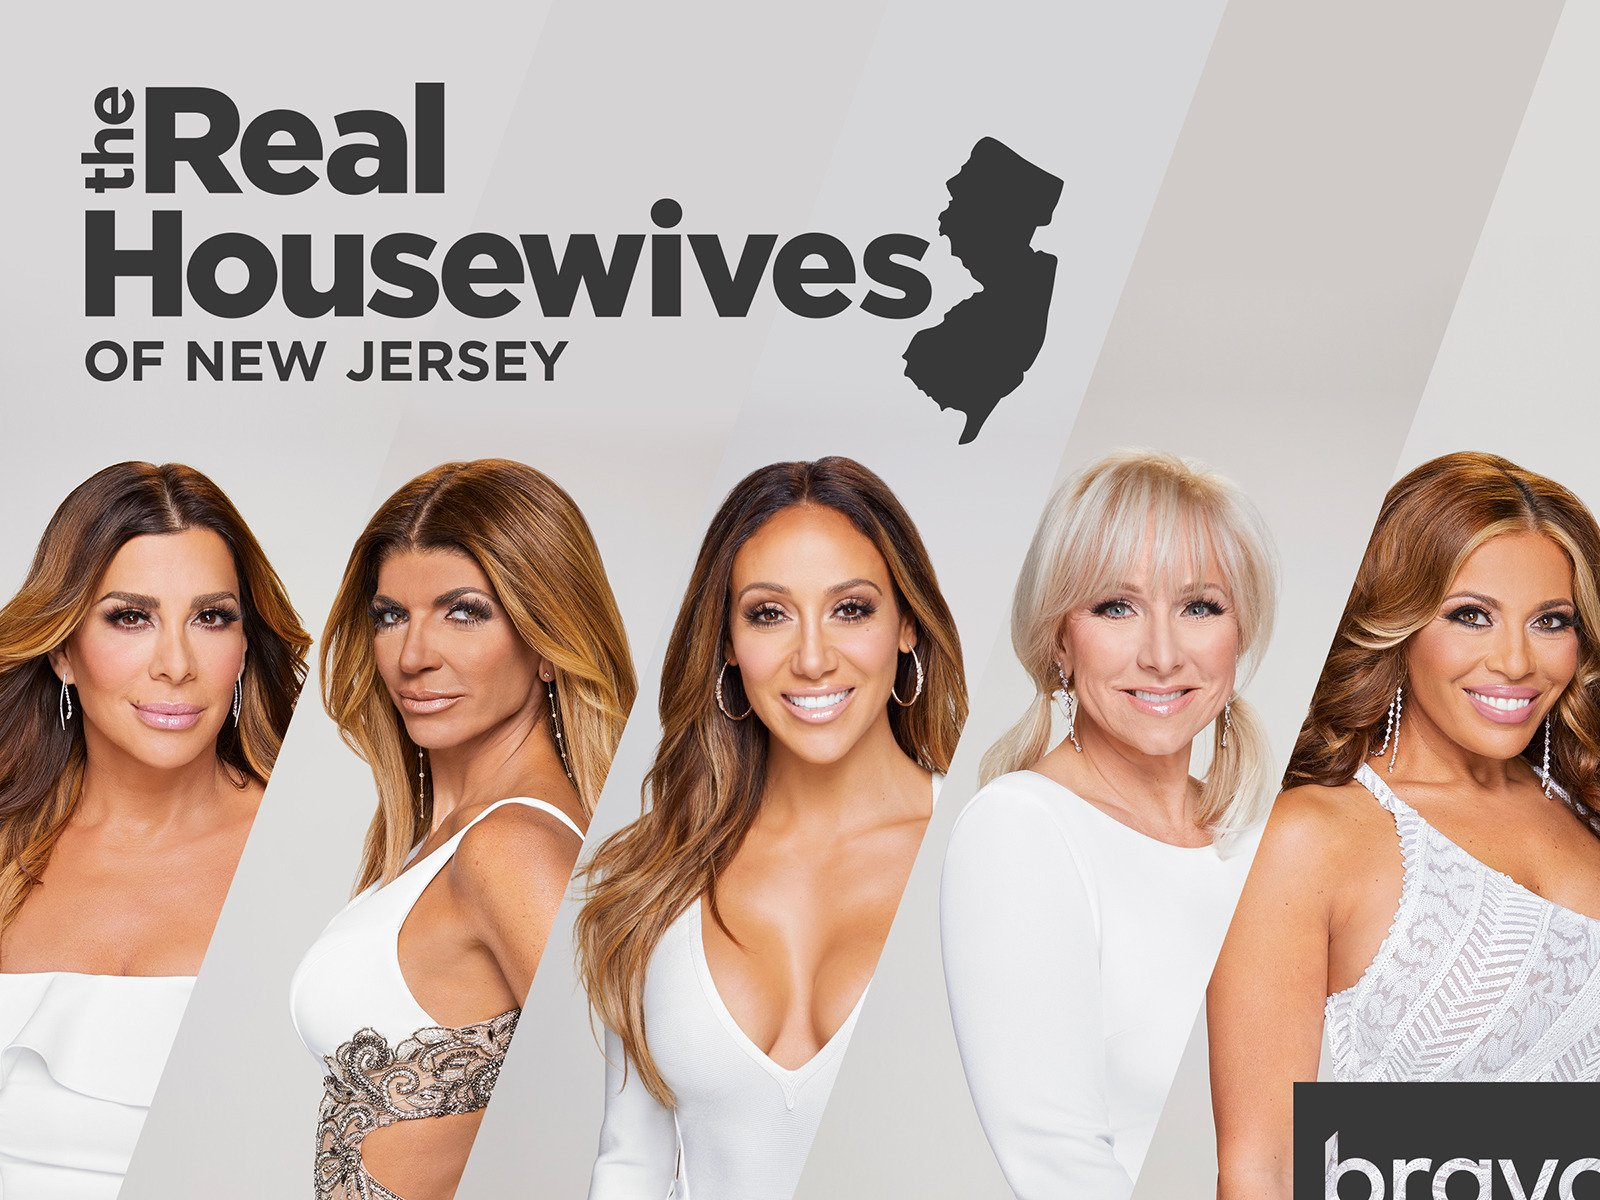 watch the real housewives of New Jersey online free on amazon